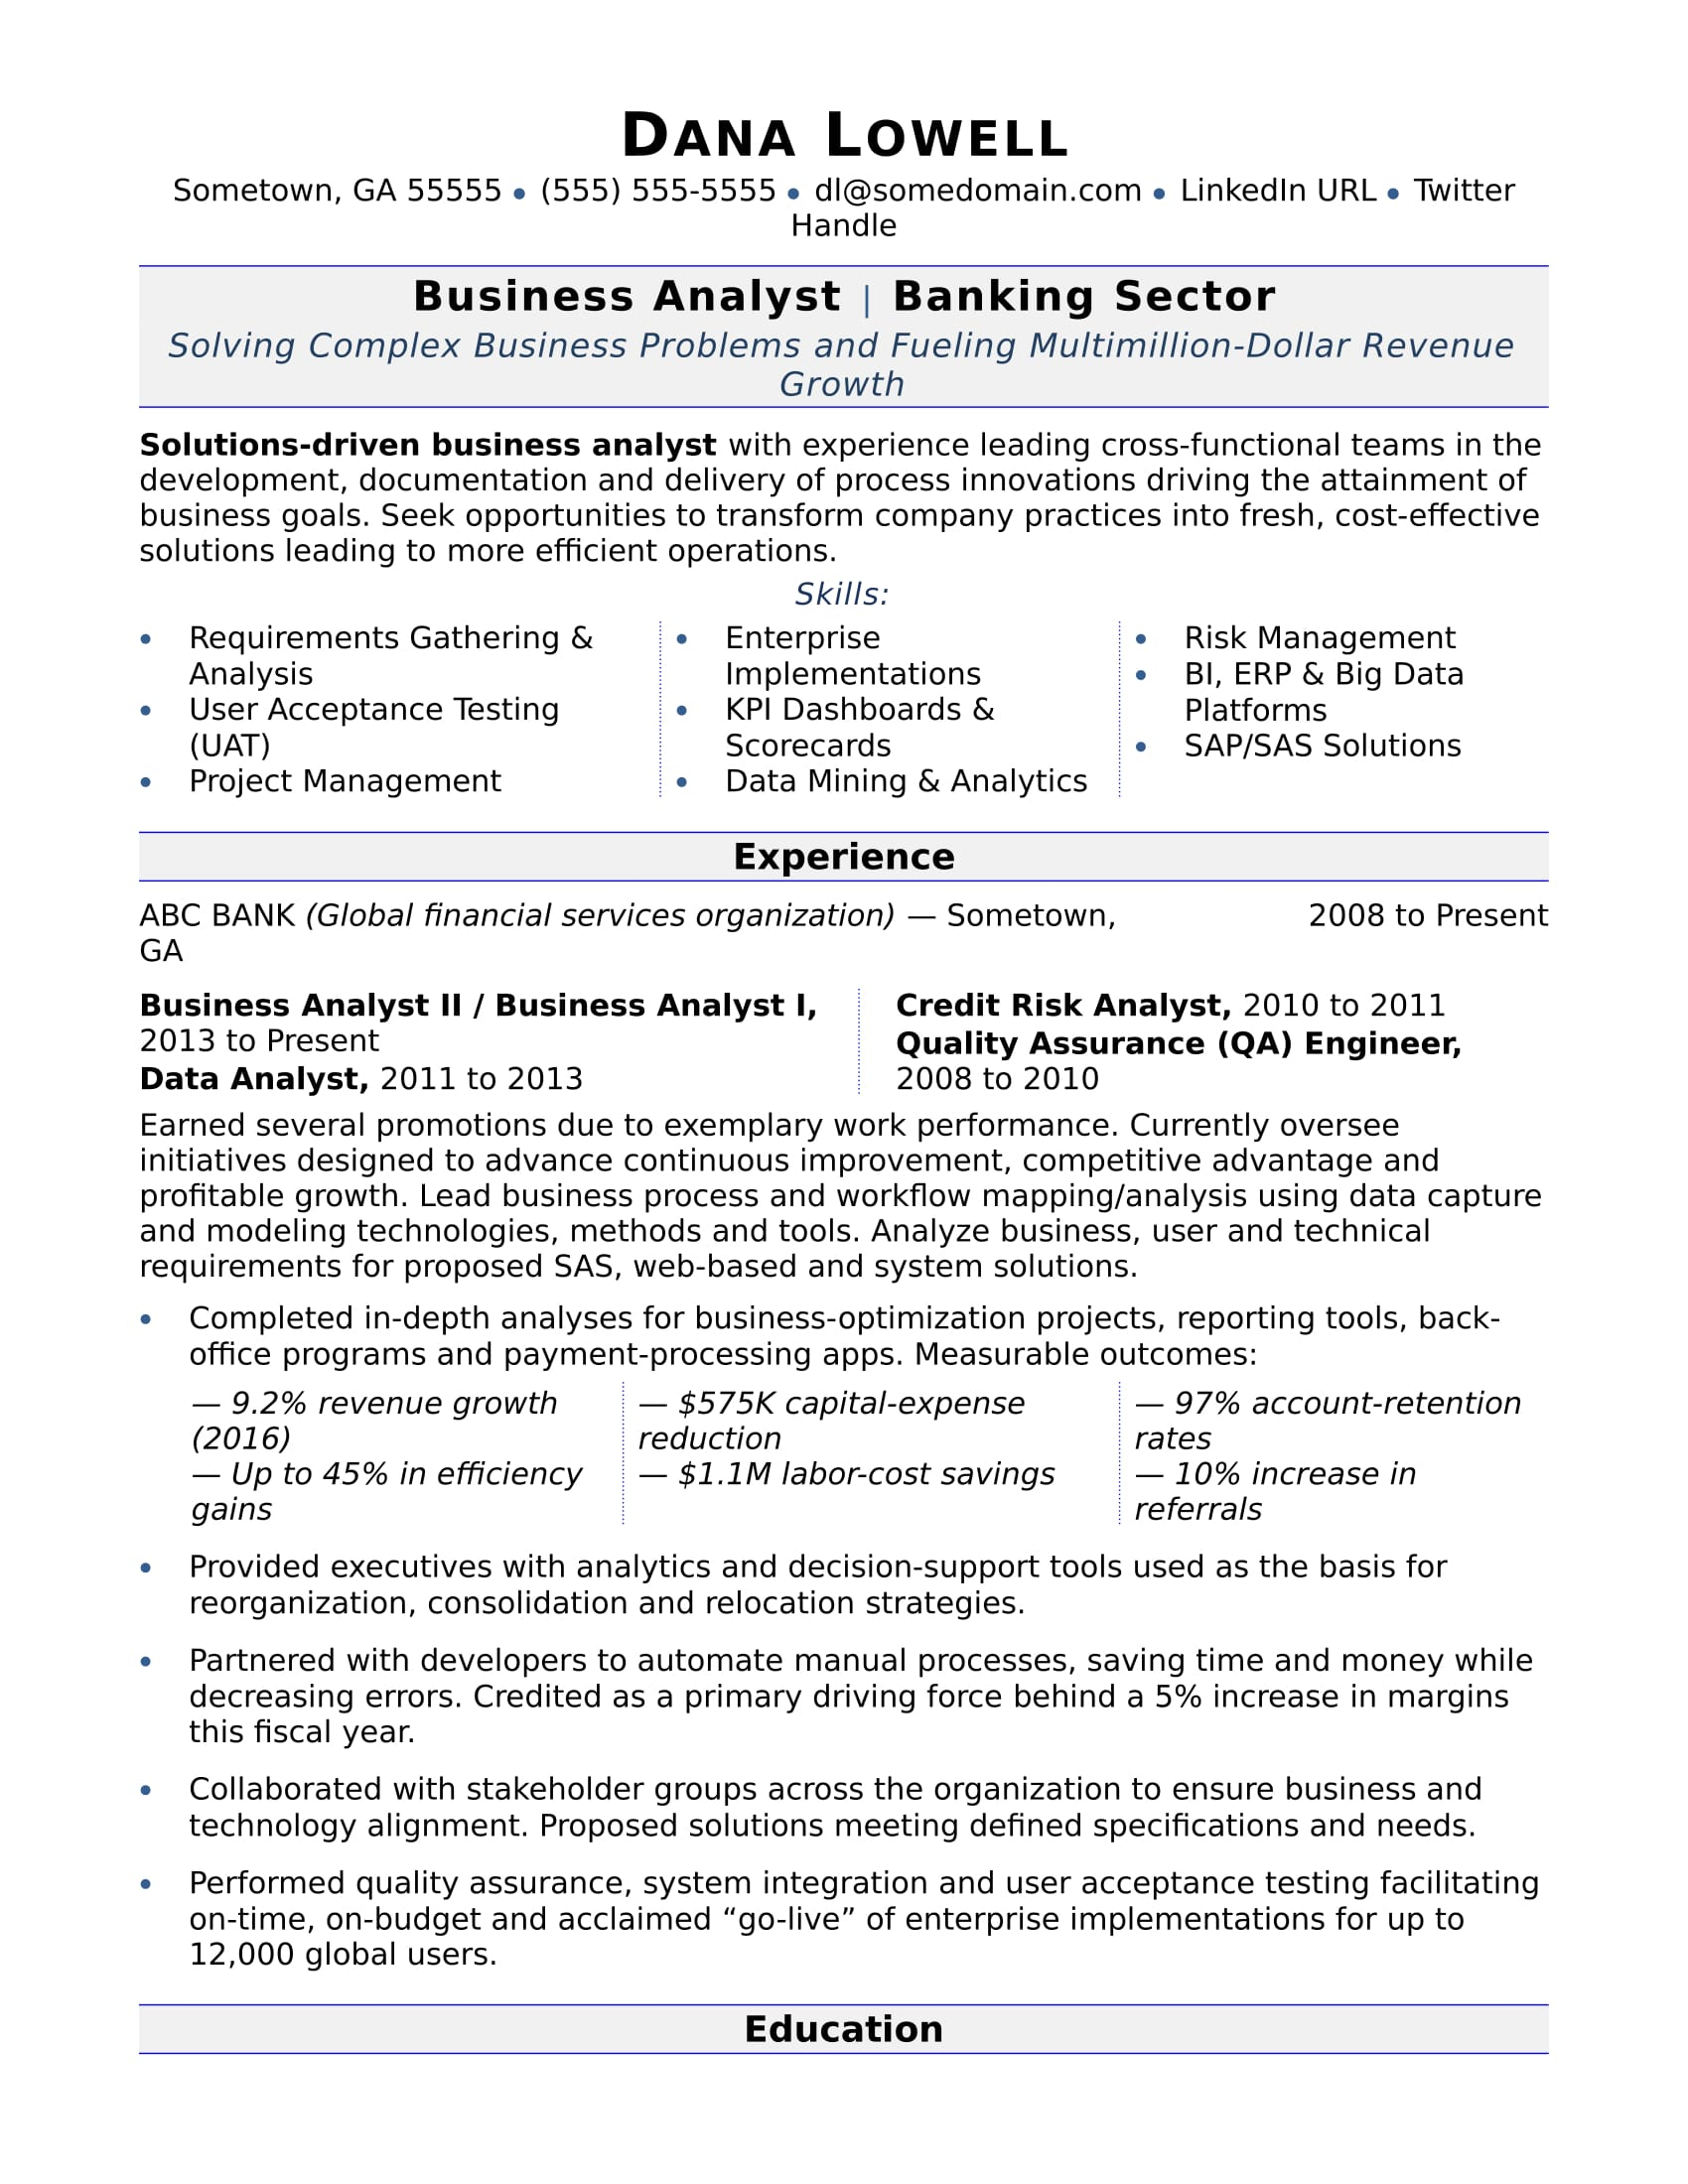 business analyst resume sample monster examples businessanalyst dietitian templates free Resume Business Resume Examples 2019